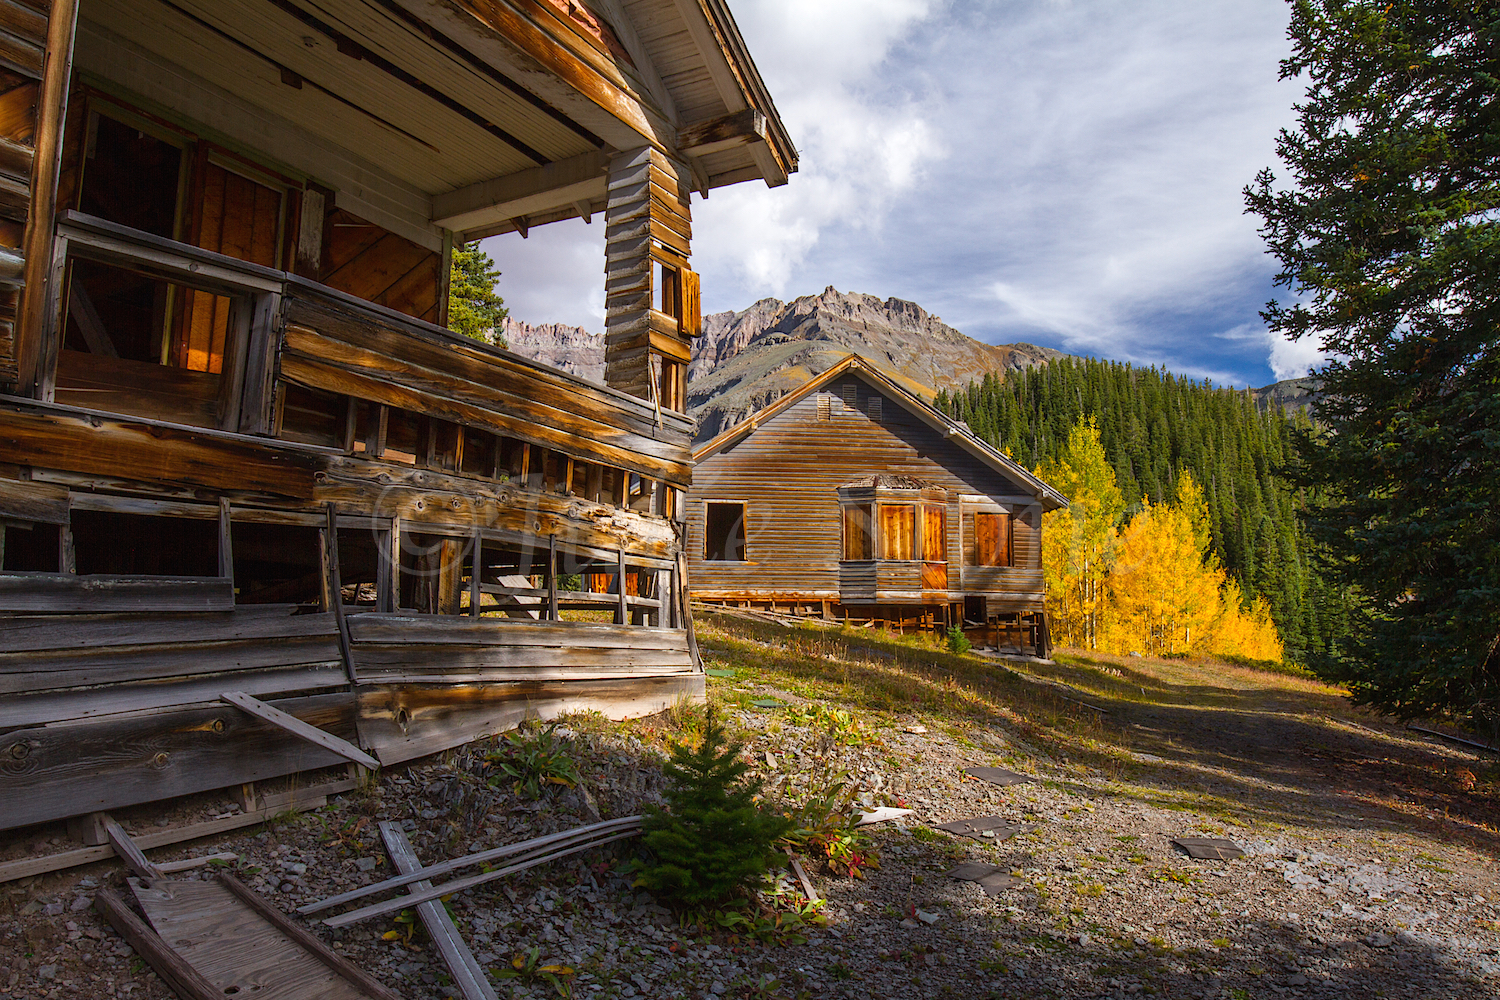 Alta Ghost Town, Image #3506